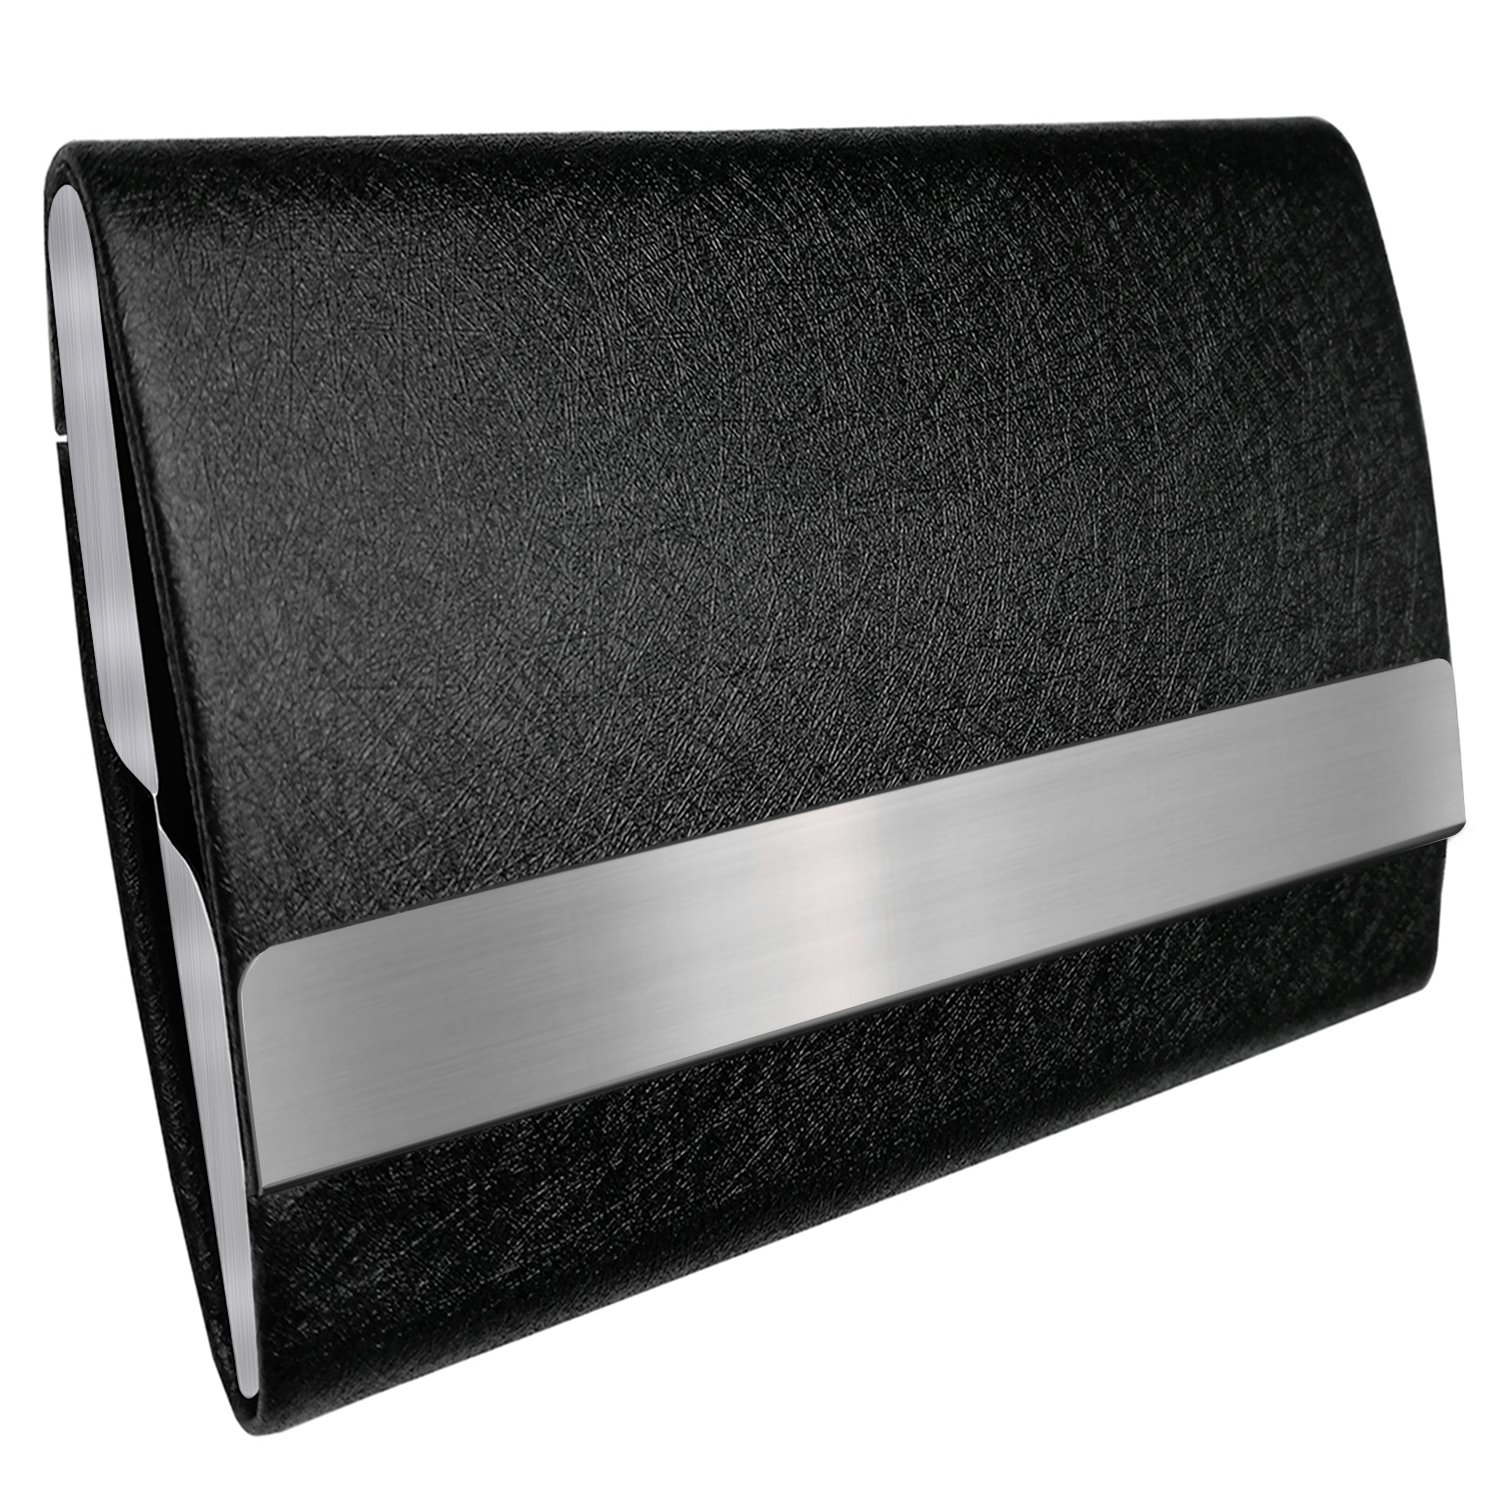 Bolier Business Card Holder, Leather Business Card Case with Magnetic Shut, Holds 25 Business Cards, Men or Women Name Card Holder Case, Larger Capacity (Double-Side Design)